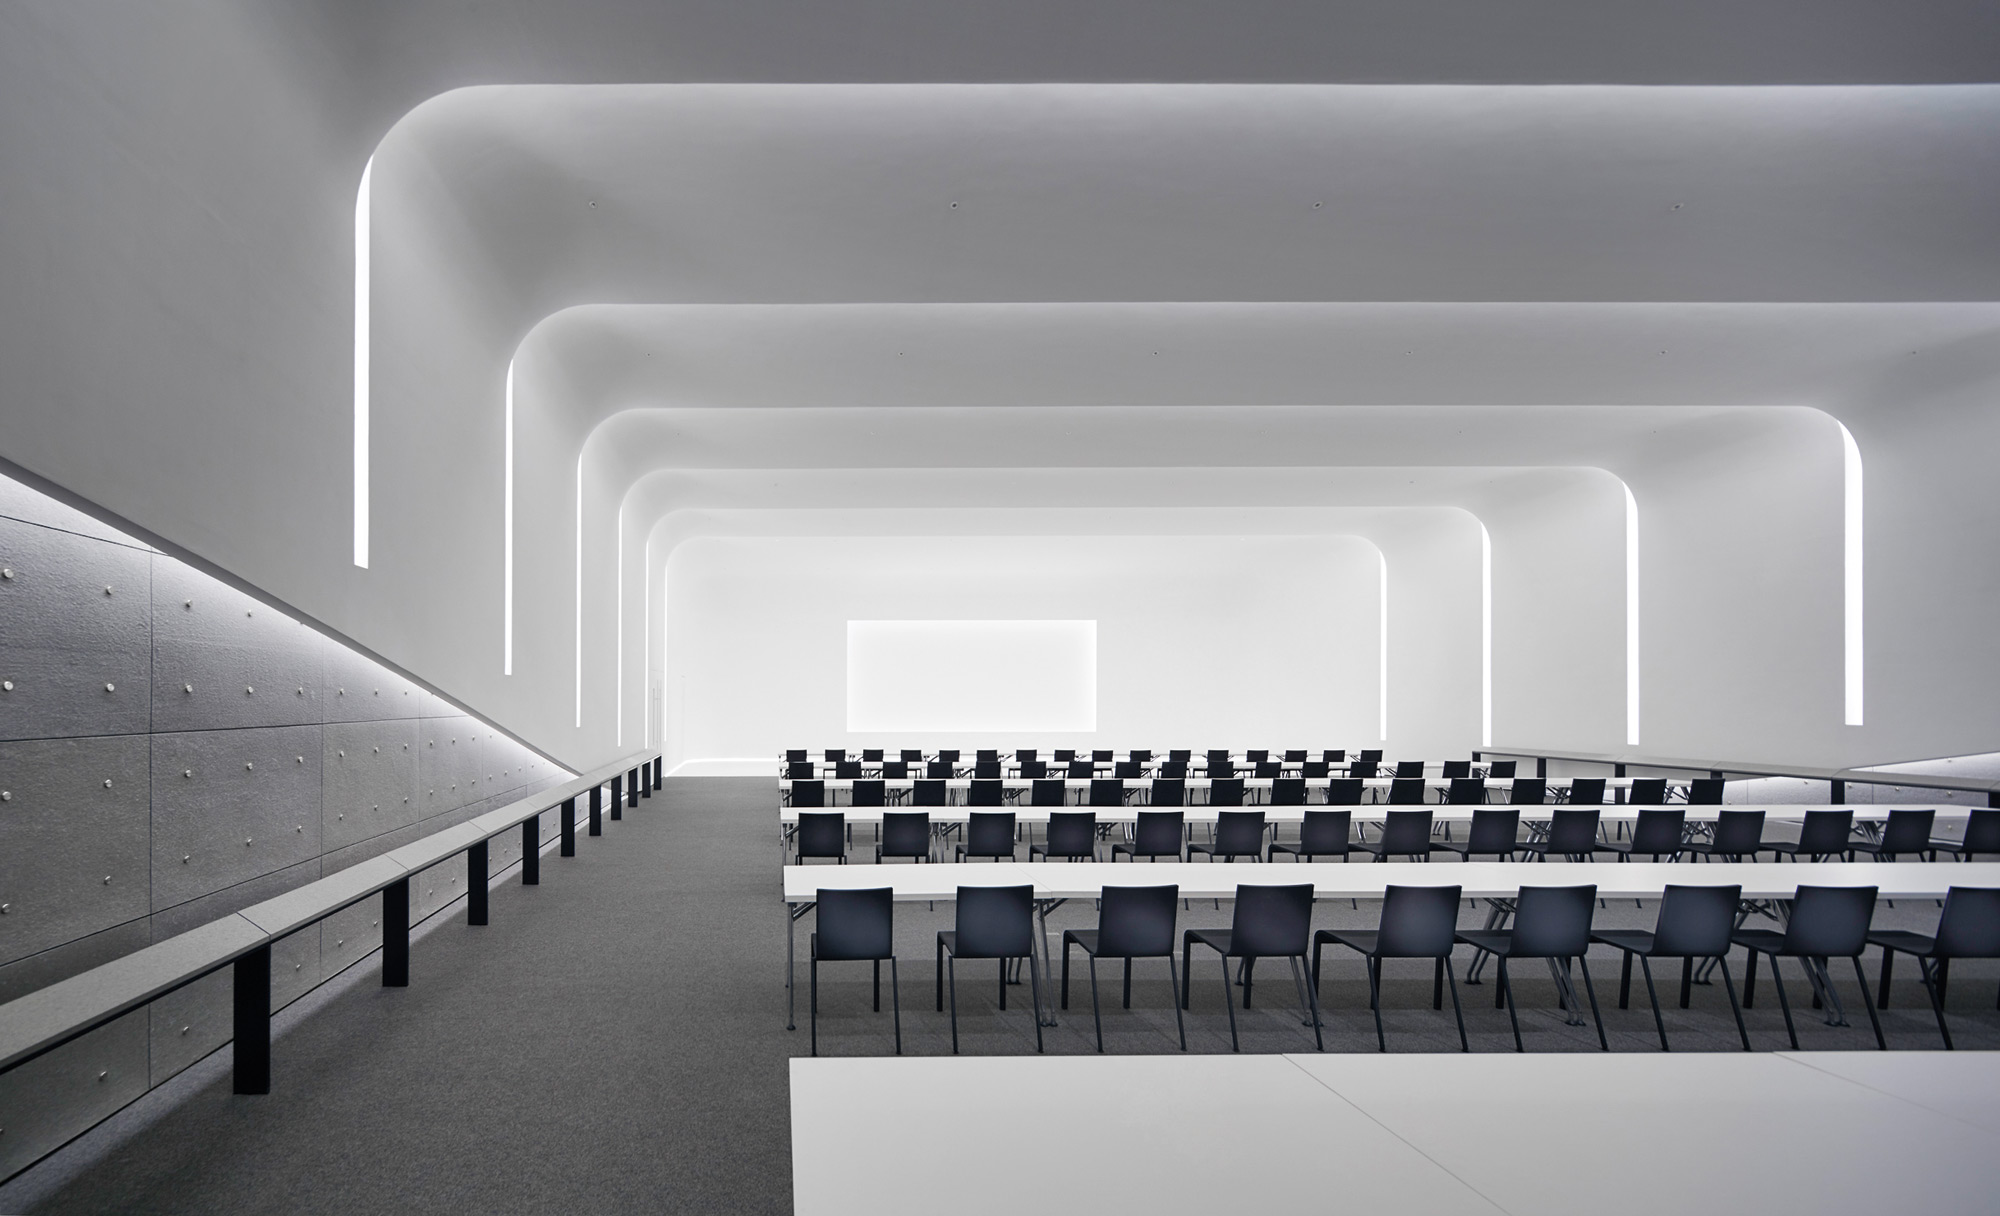 Gensler designs spectacular seoul conference center for hyundai